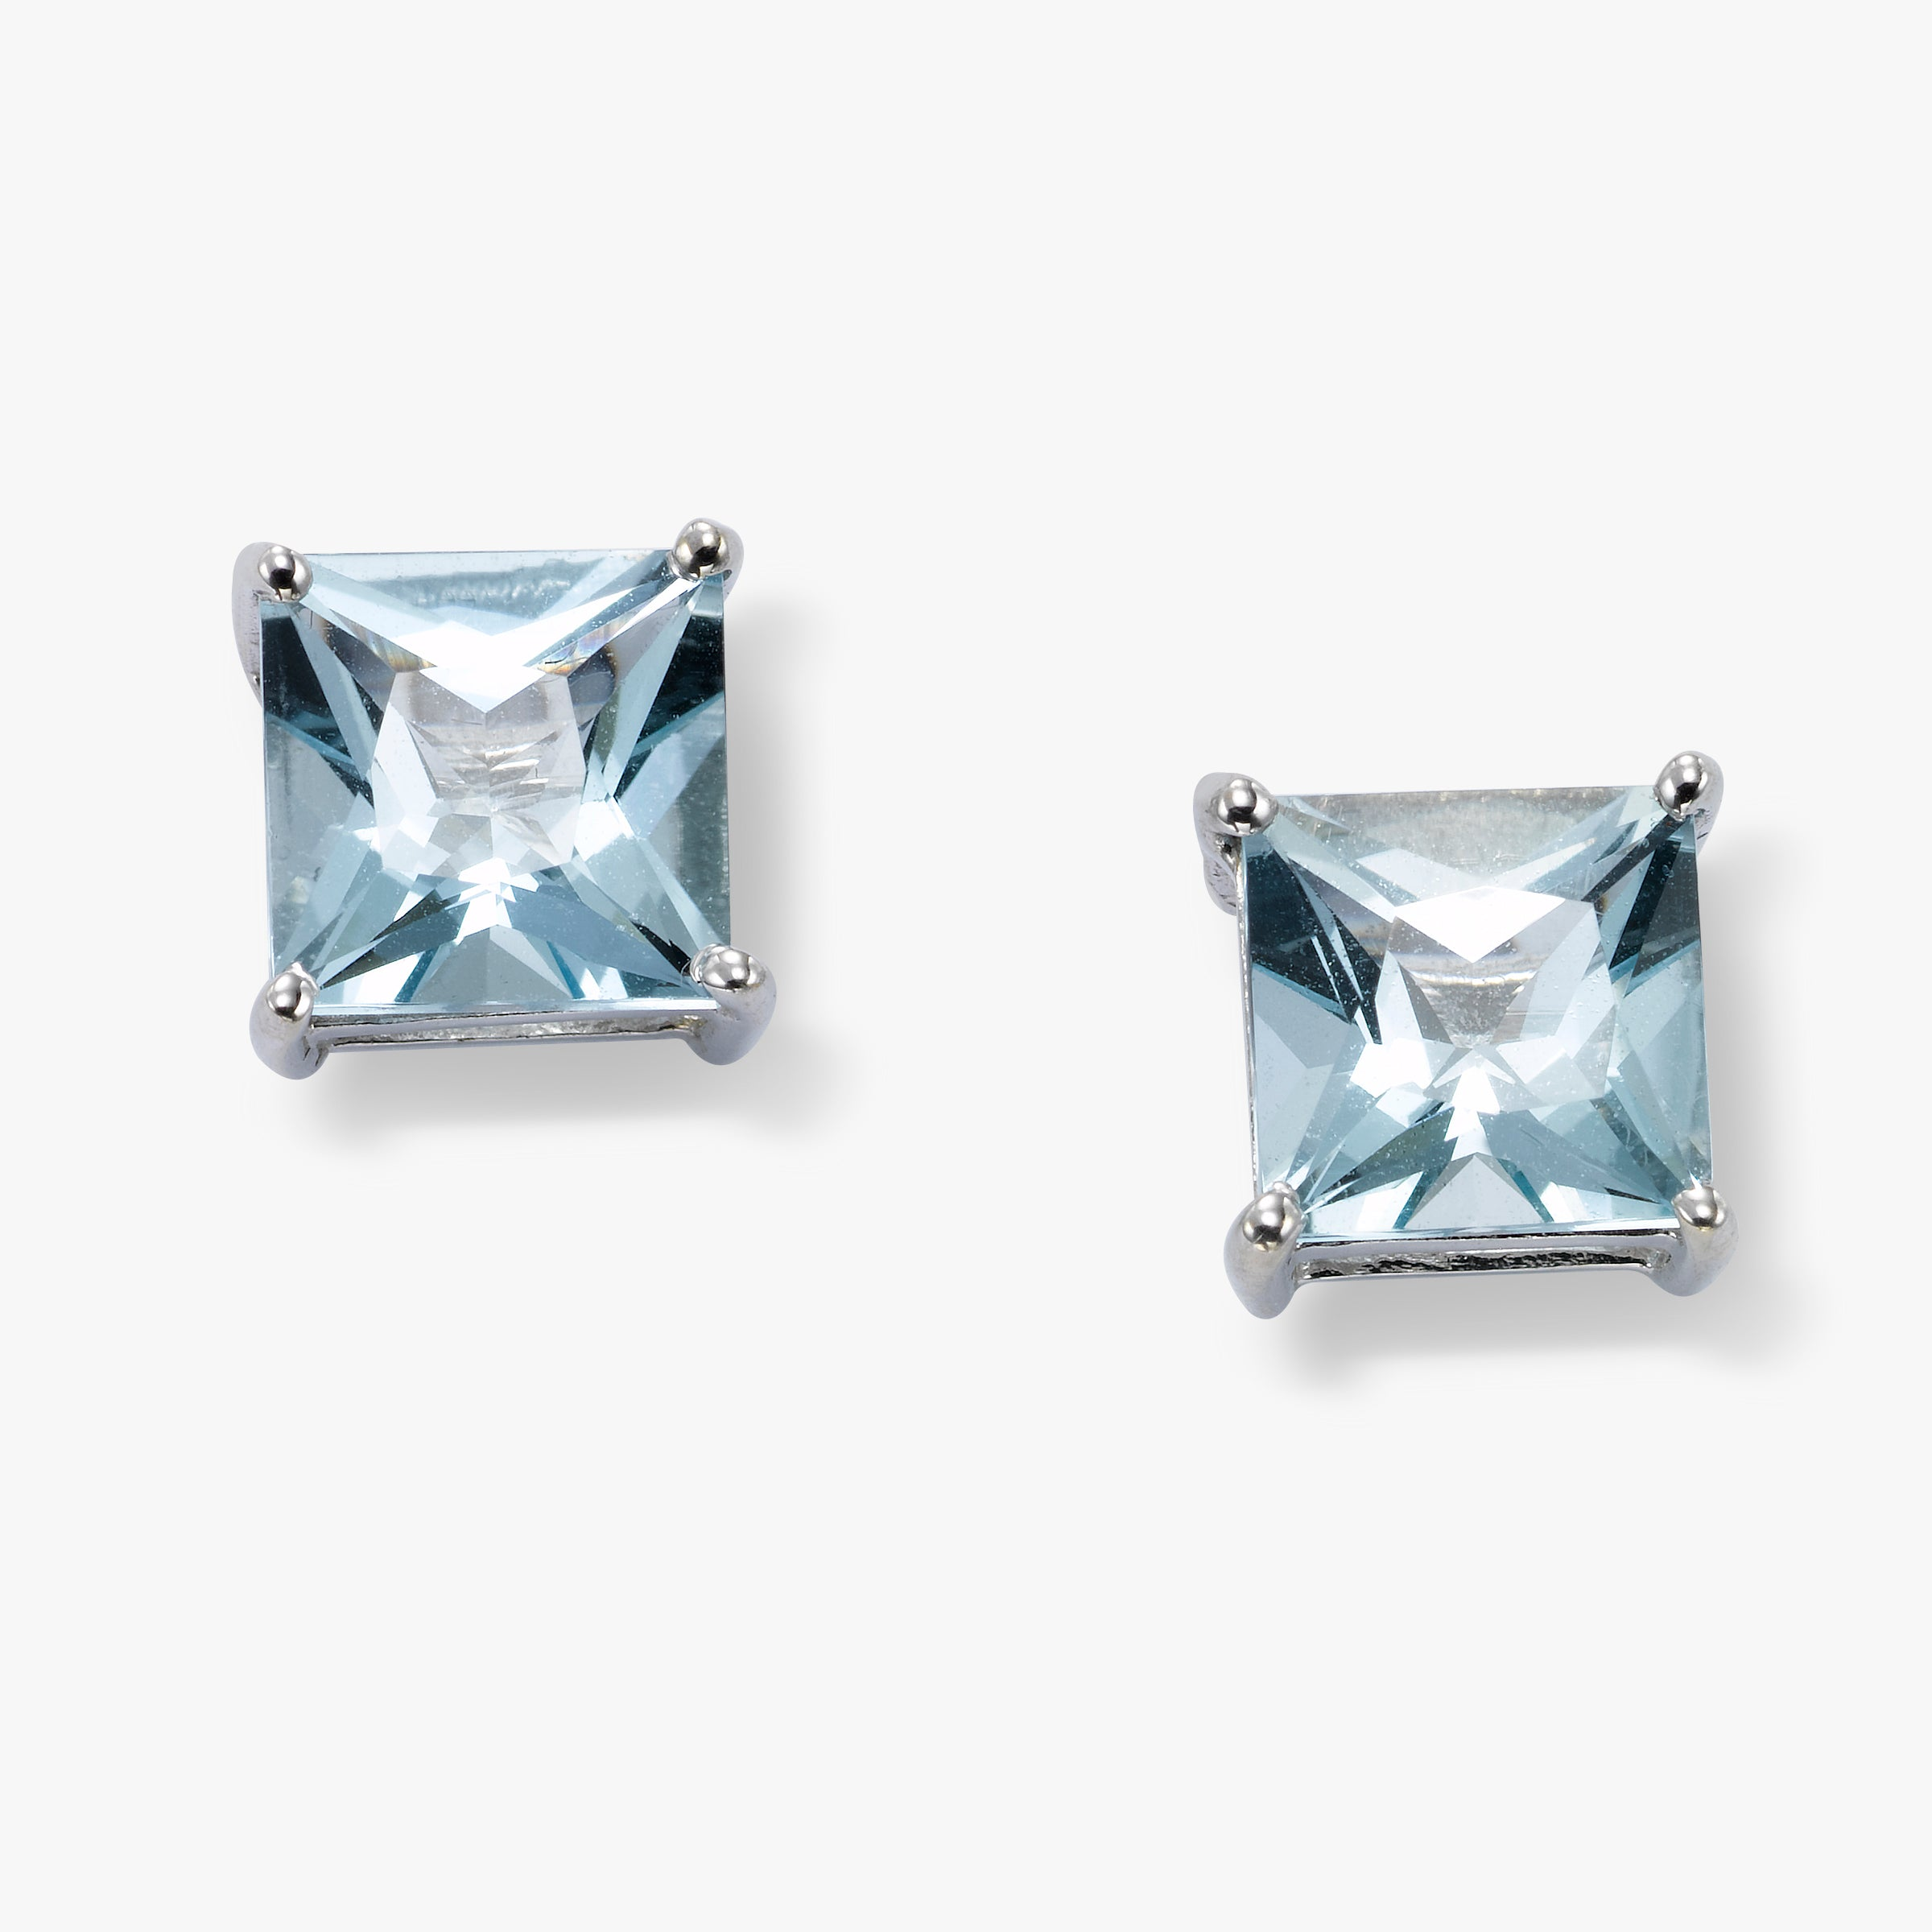 Princess Cut Aquamarine Stud Earrings, 5MM, 14K White Gold